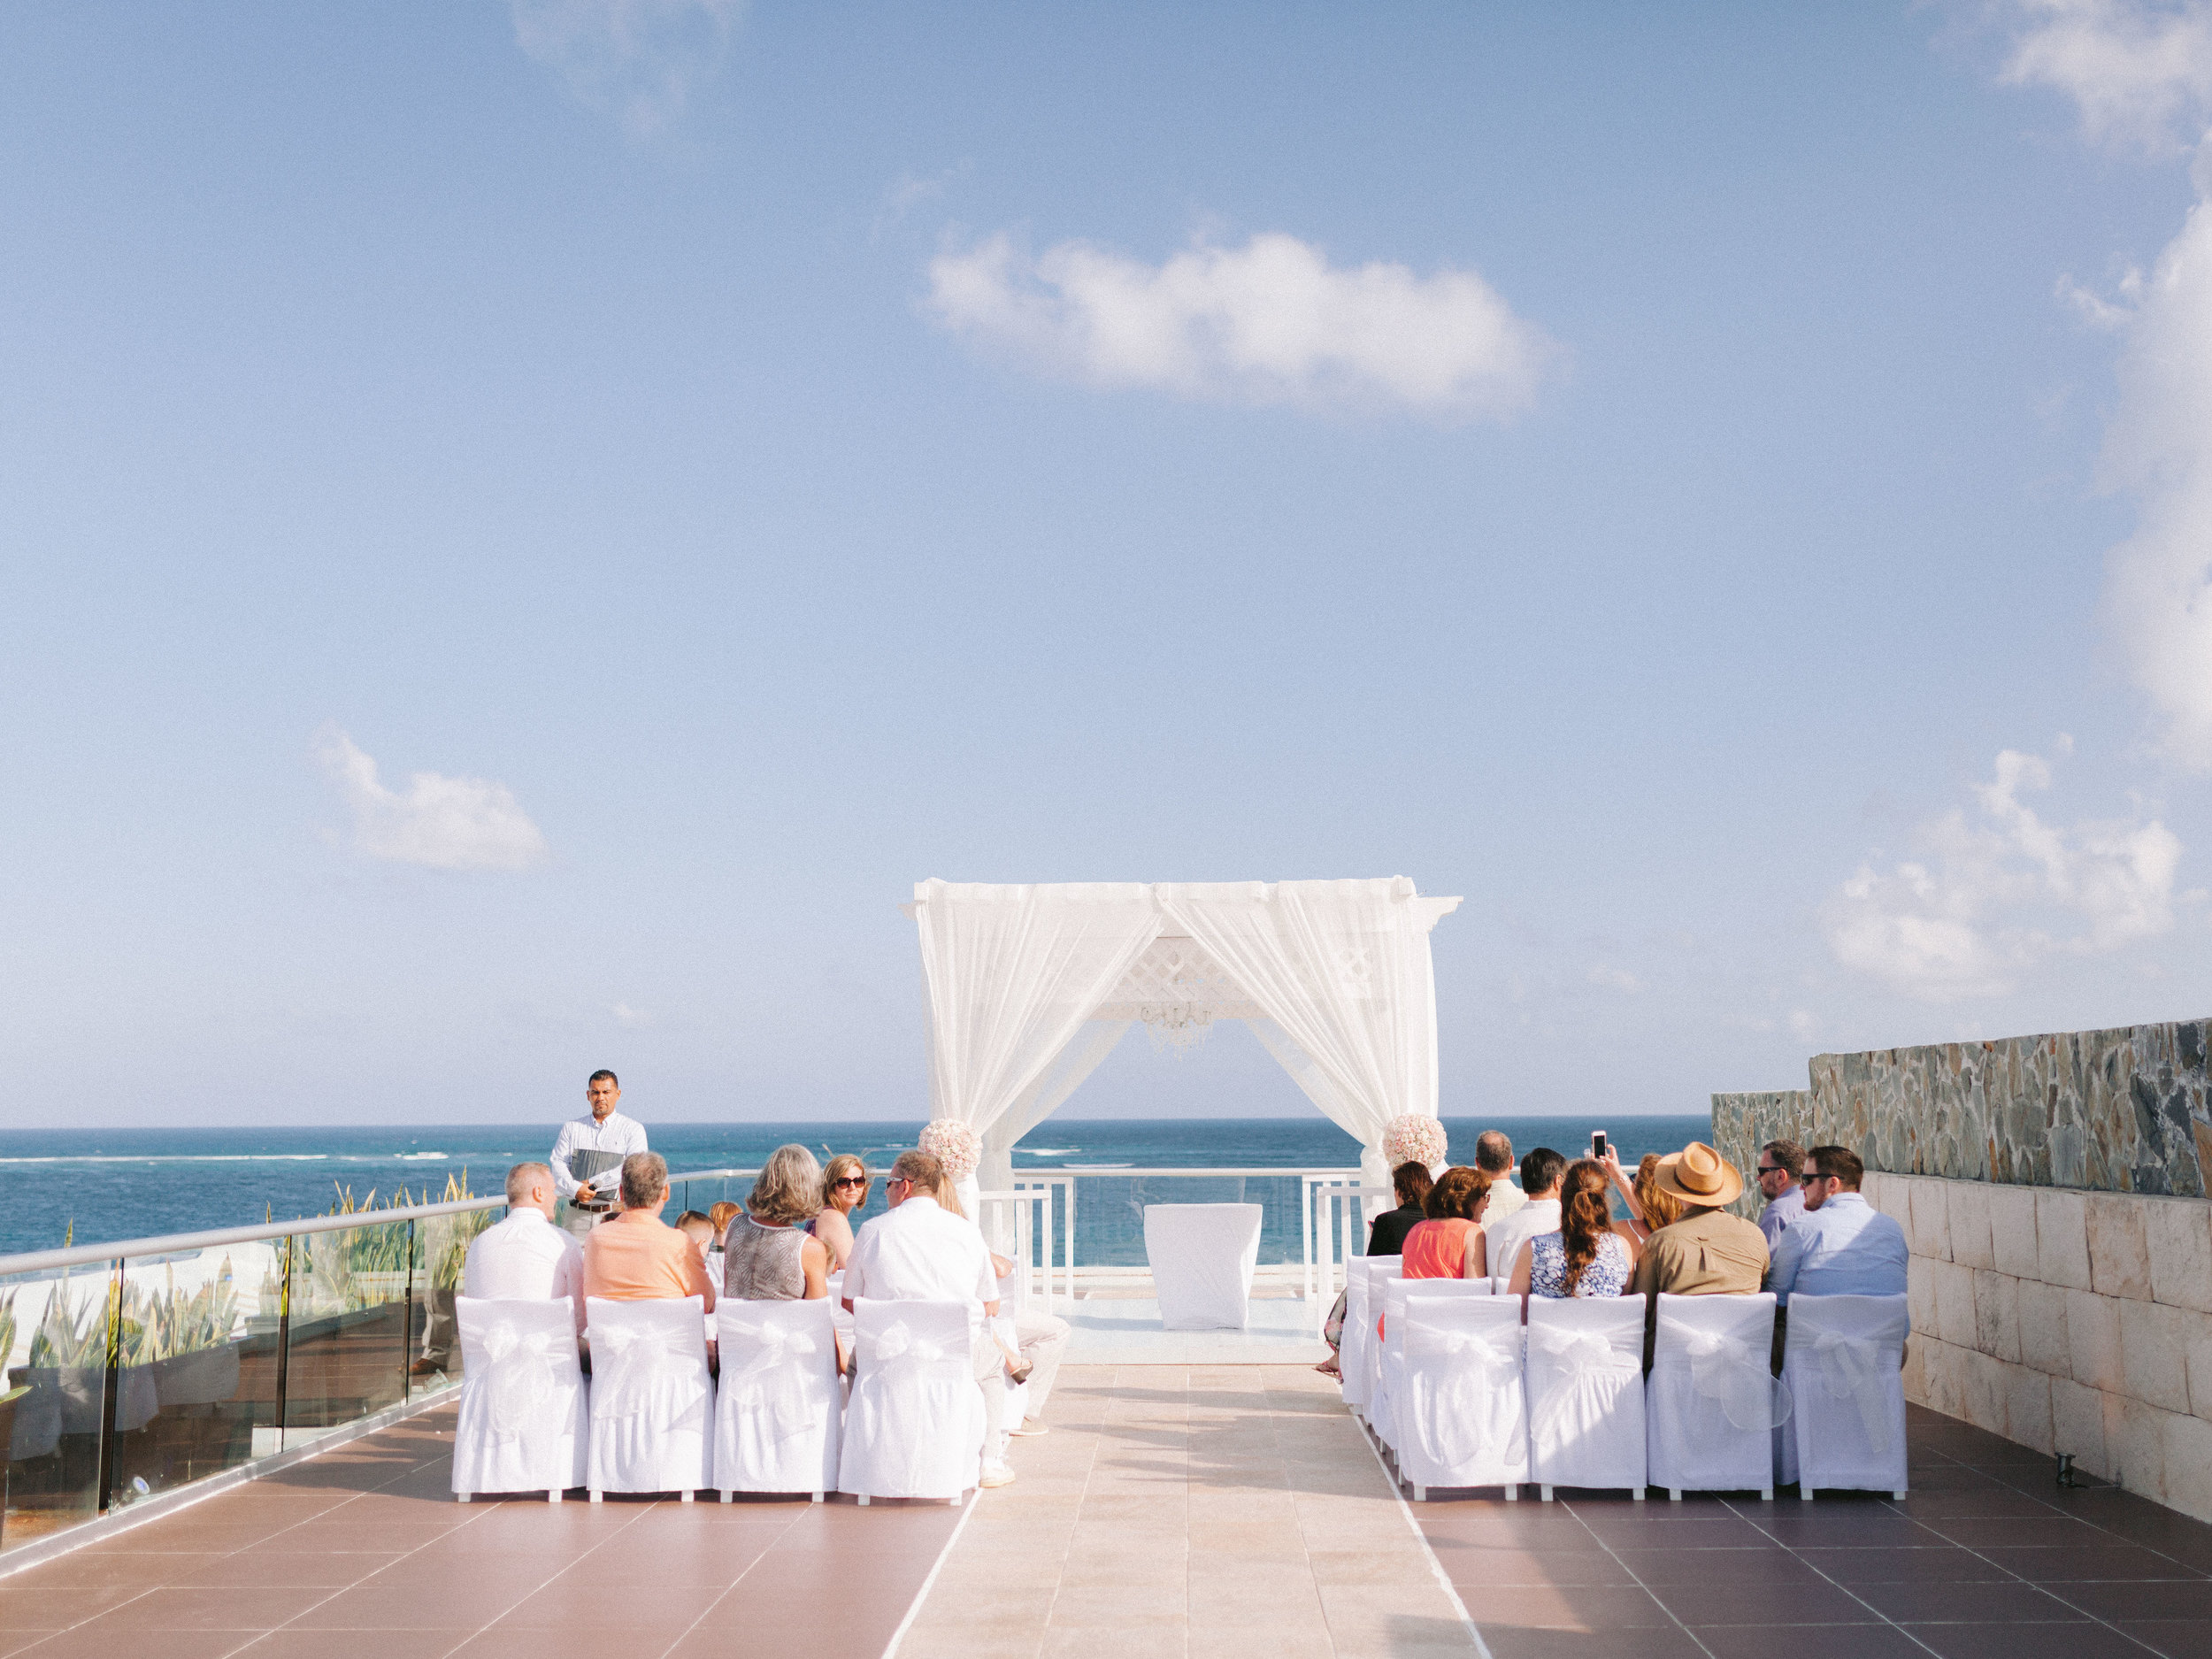 Kim_Jeff_Cancun Wedding_Ceremony_Kurtz_Orpia (24 of 119).jpg